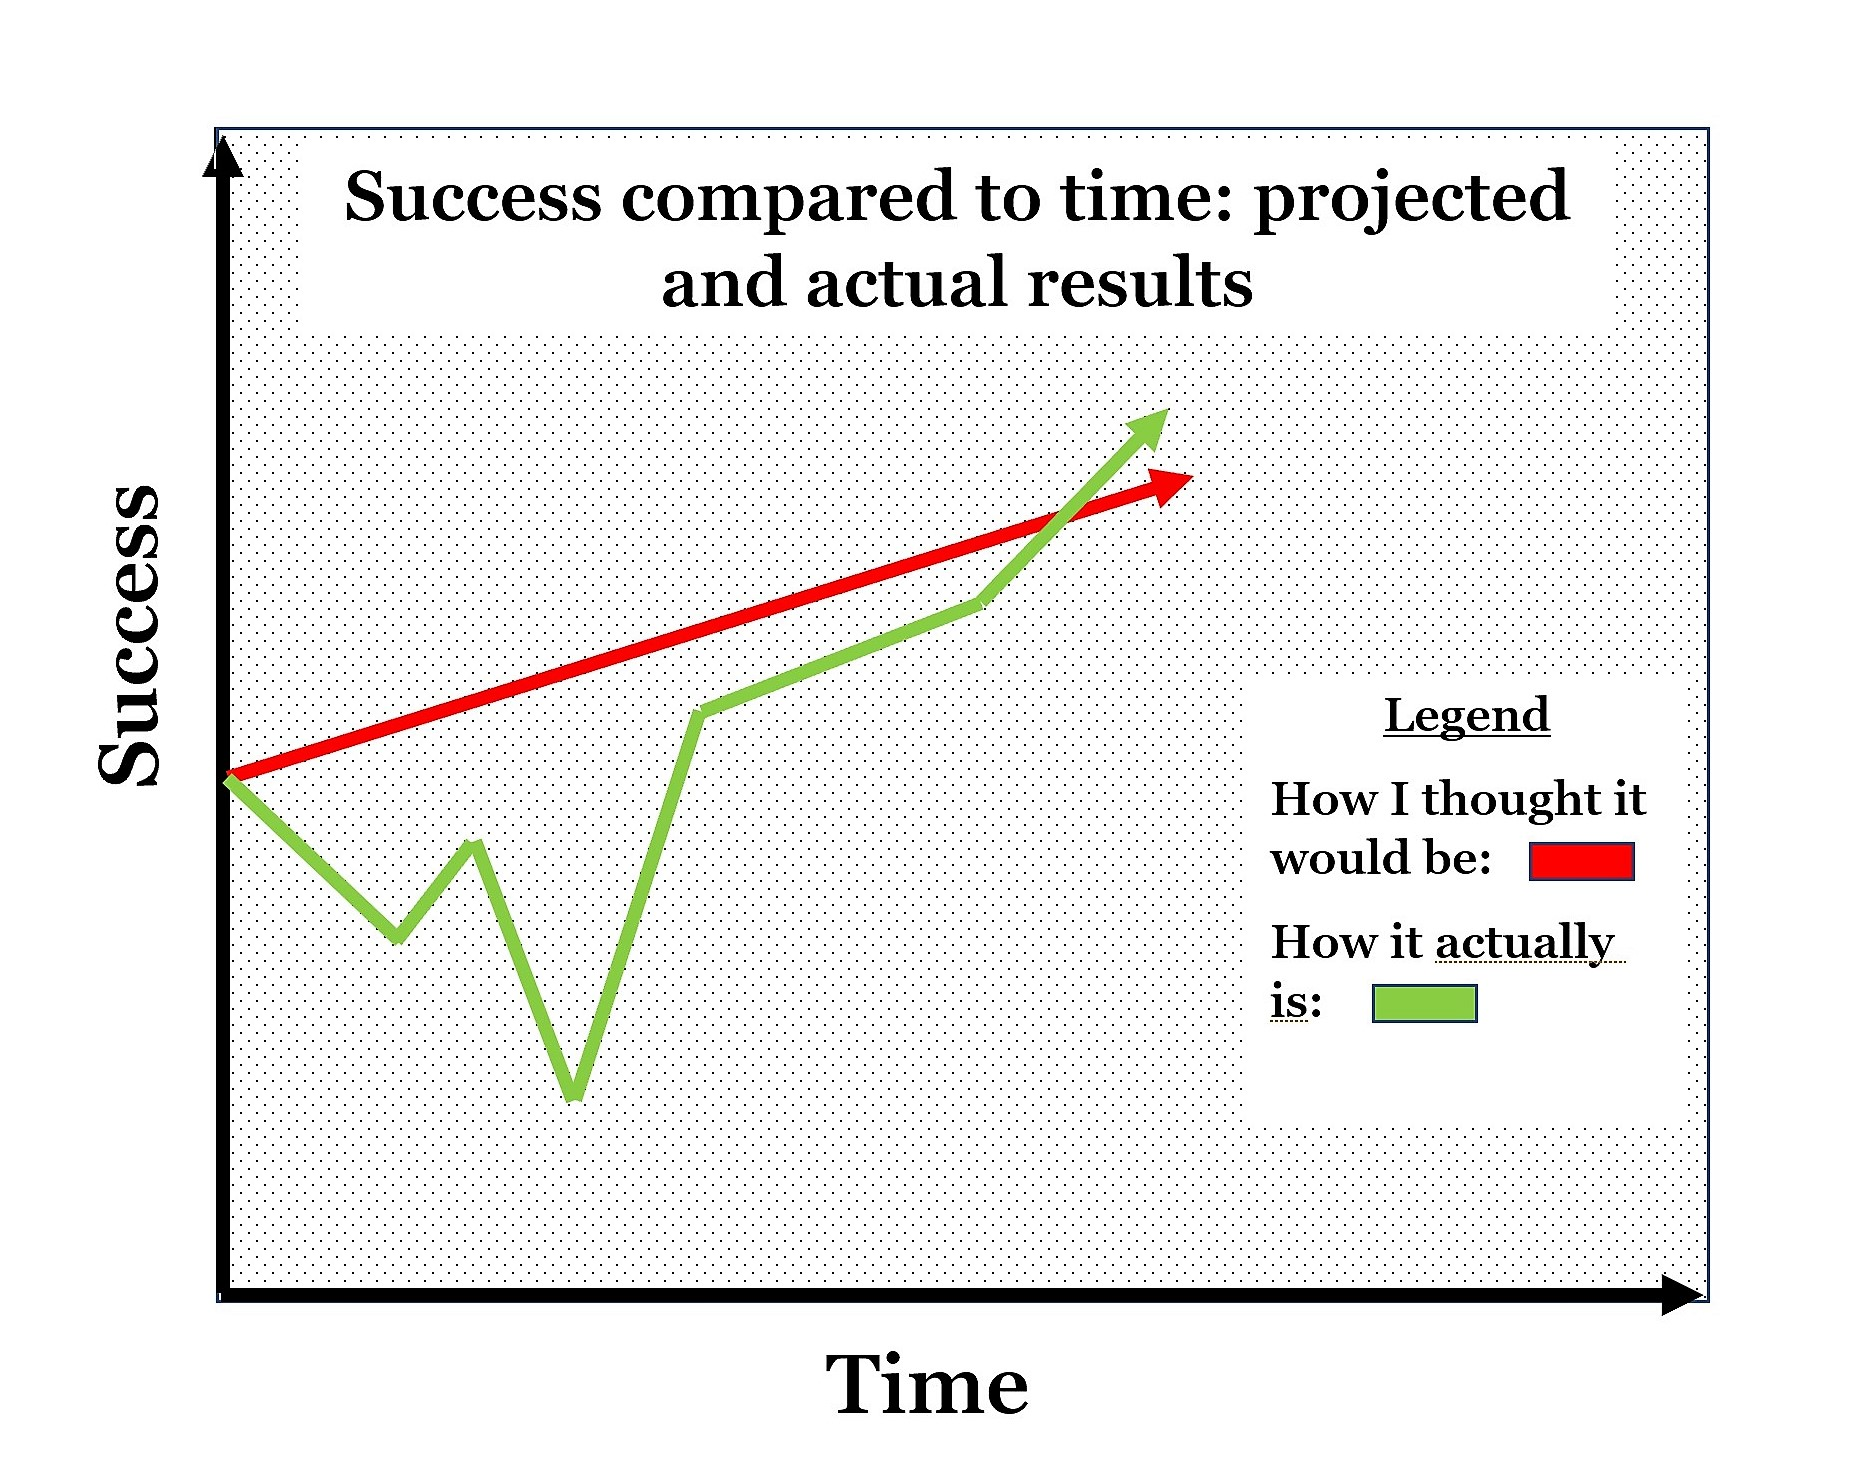 graph depicting time on the x-axis and success on the y-axis. Shows two lines: one line has a straight upwards trend, and is meant to indicate the projected trajectory of success. The other line goes up and down sporadically - meant to depict how success and failure really are